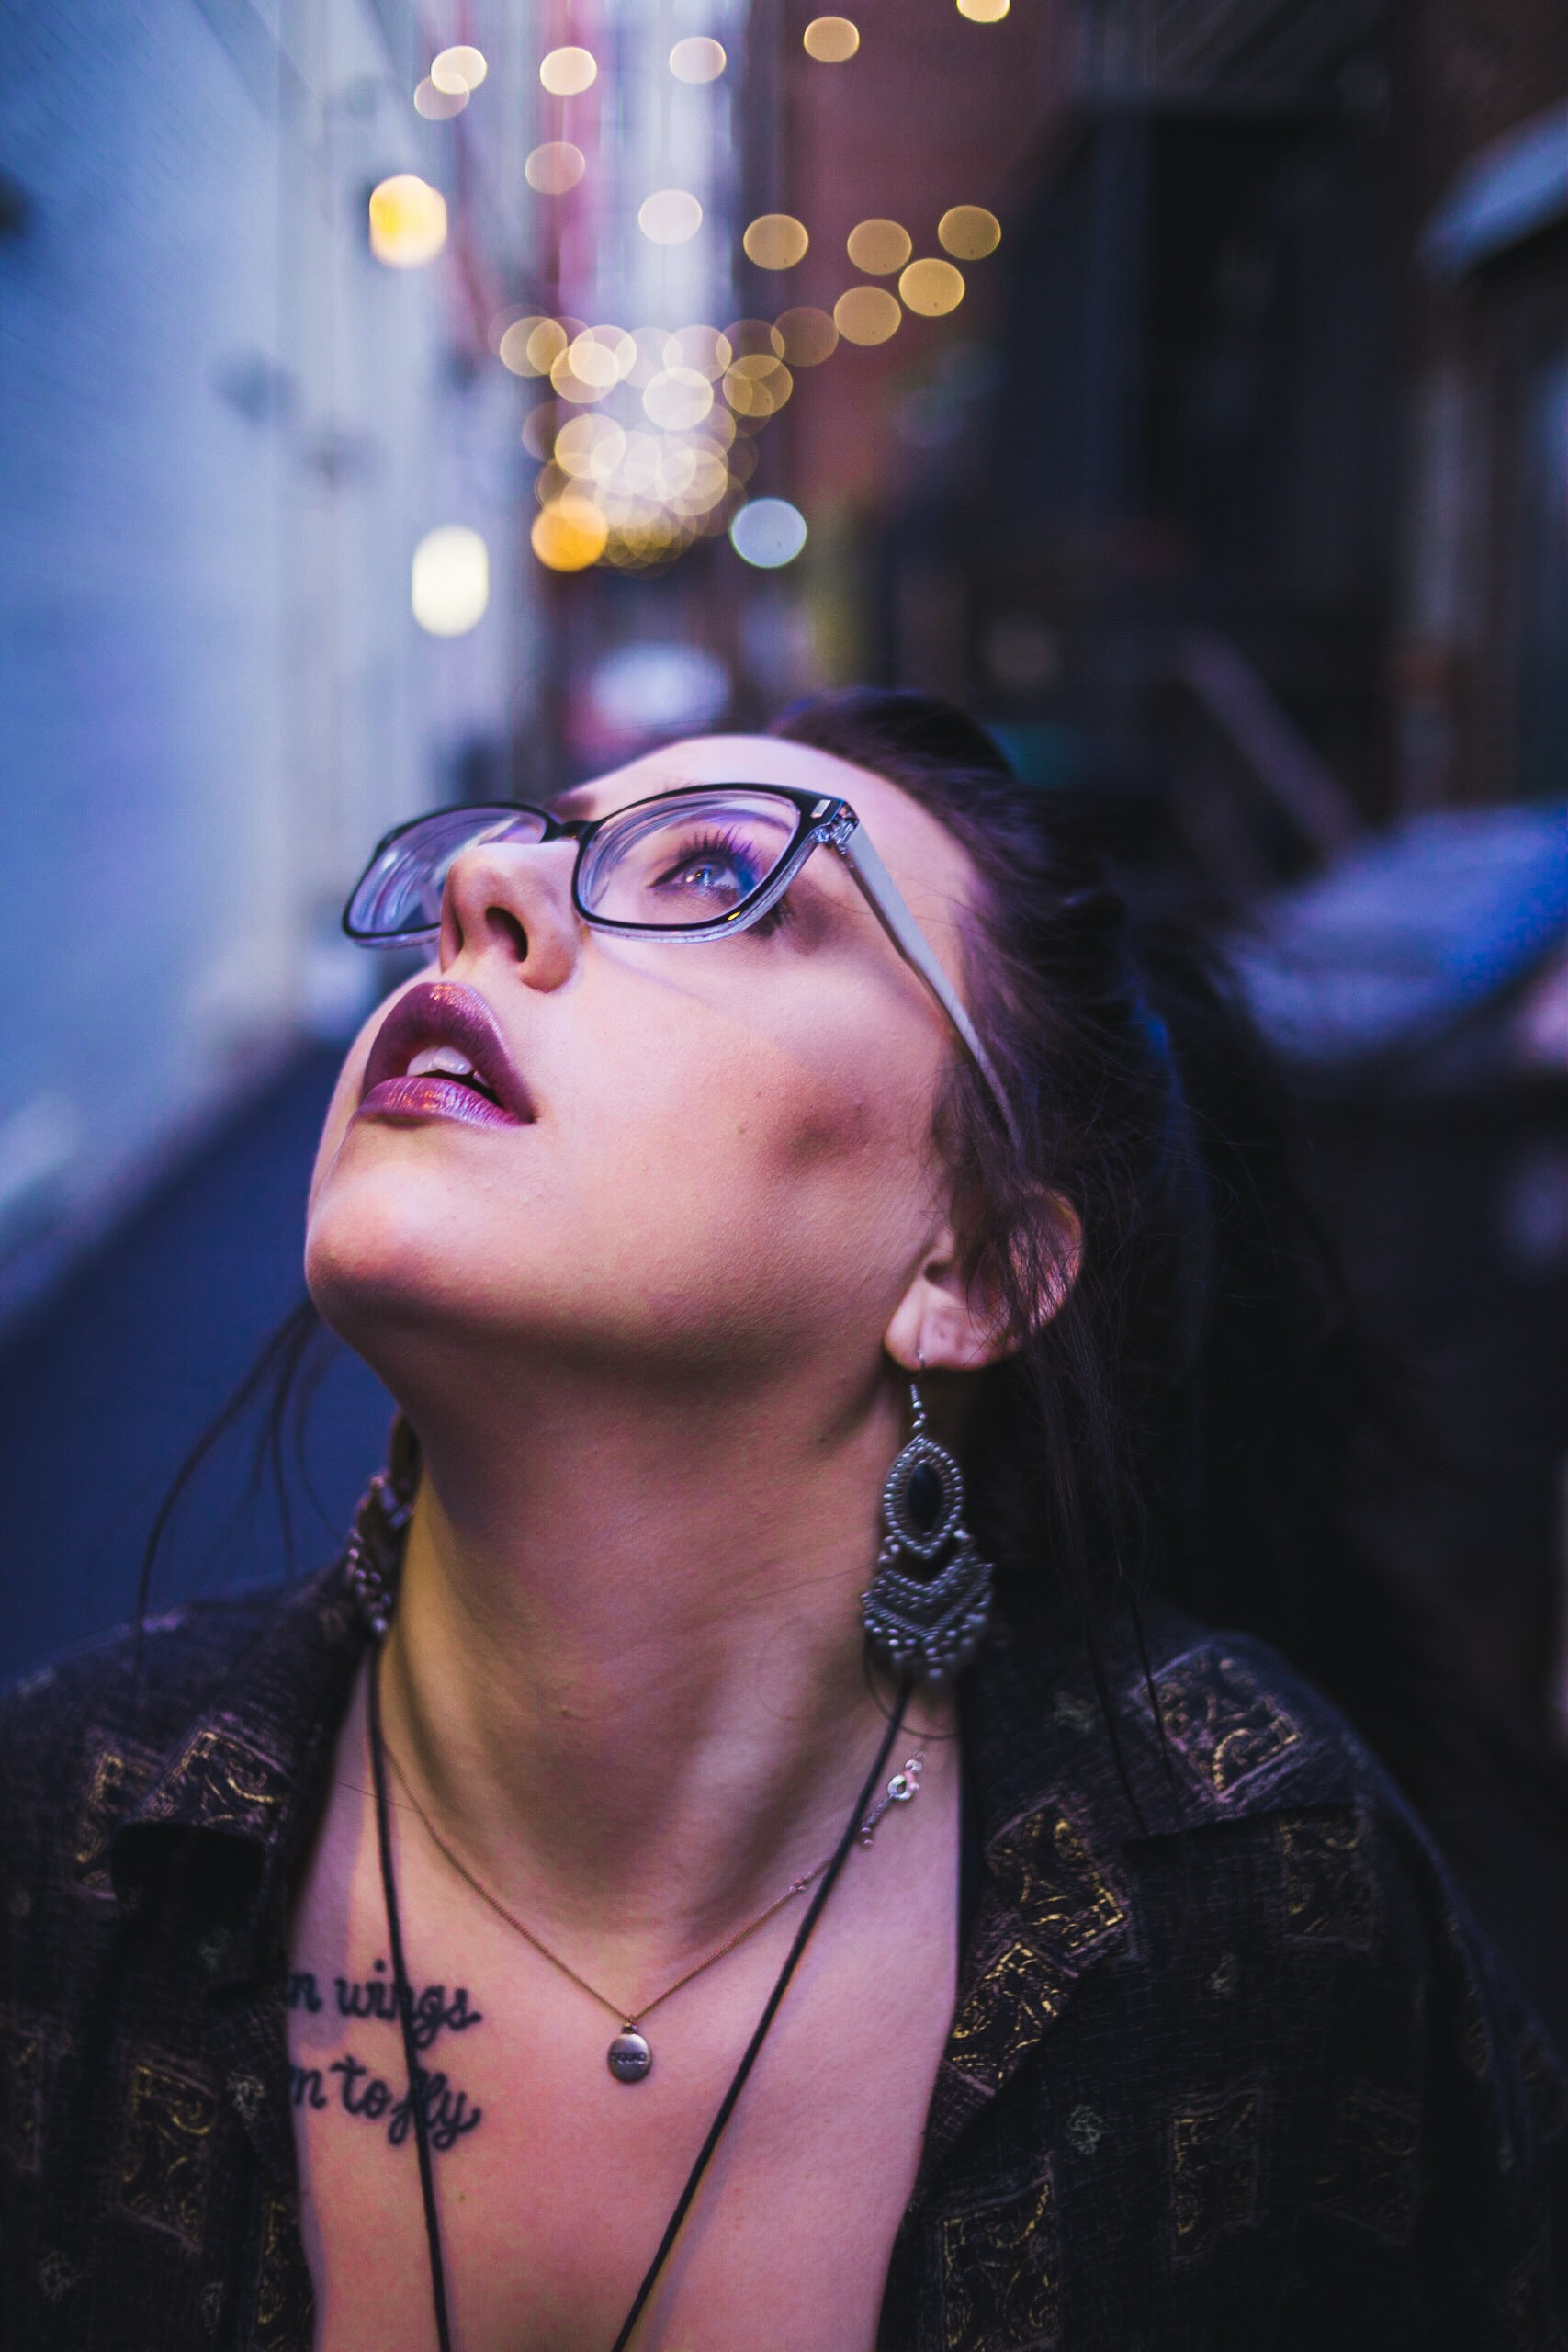 woman looking upwards wearing glasses in selective focus photography